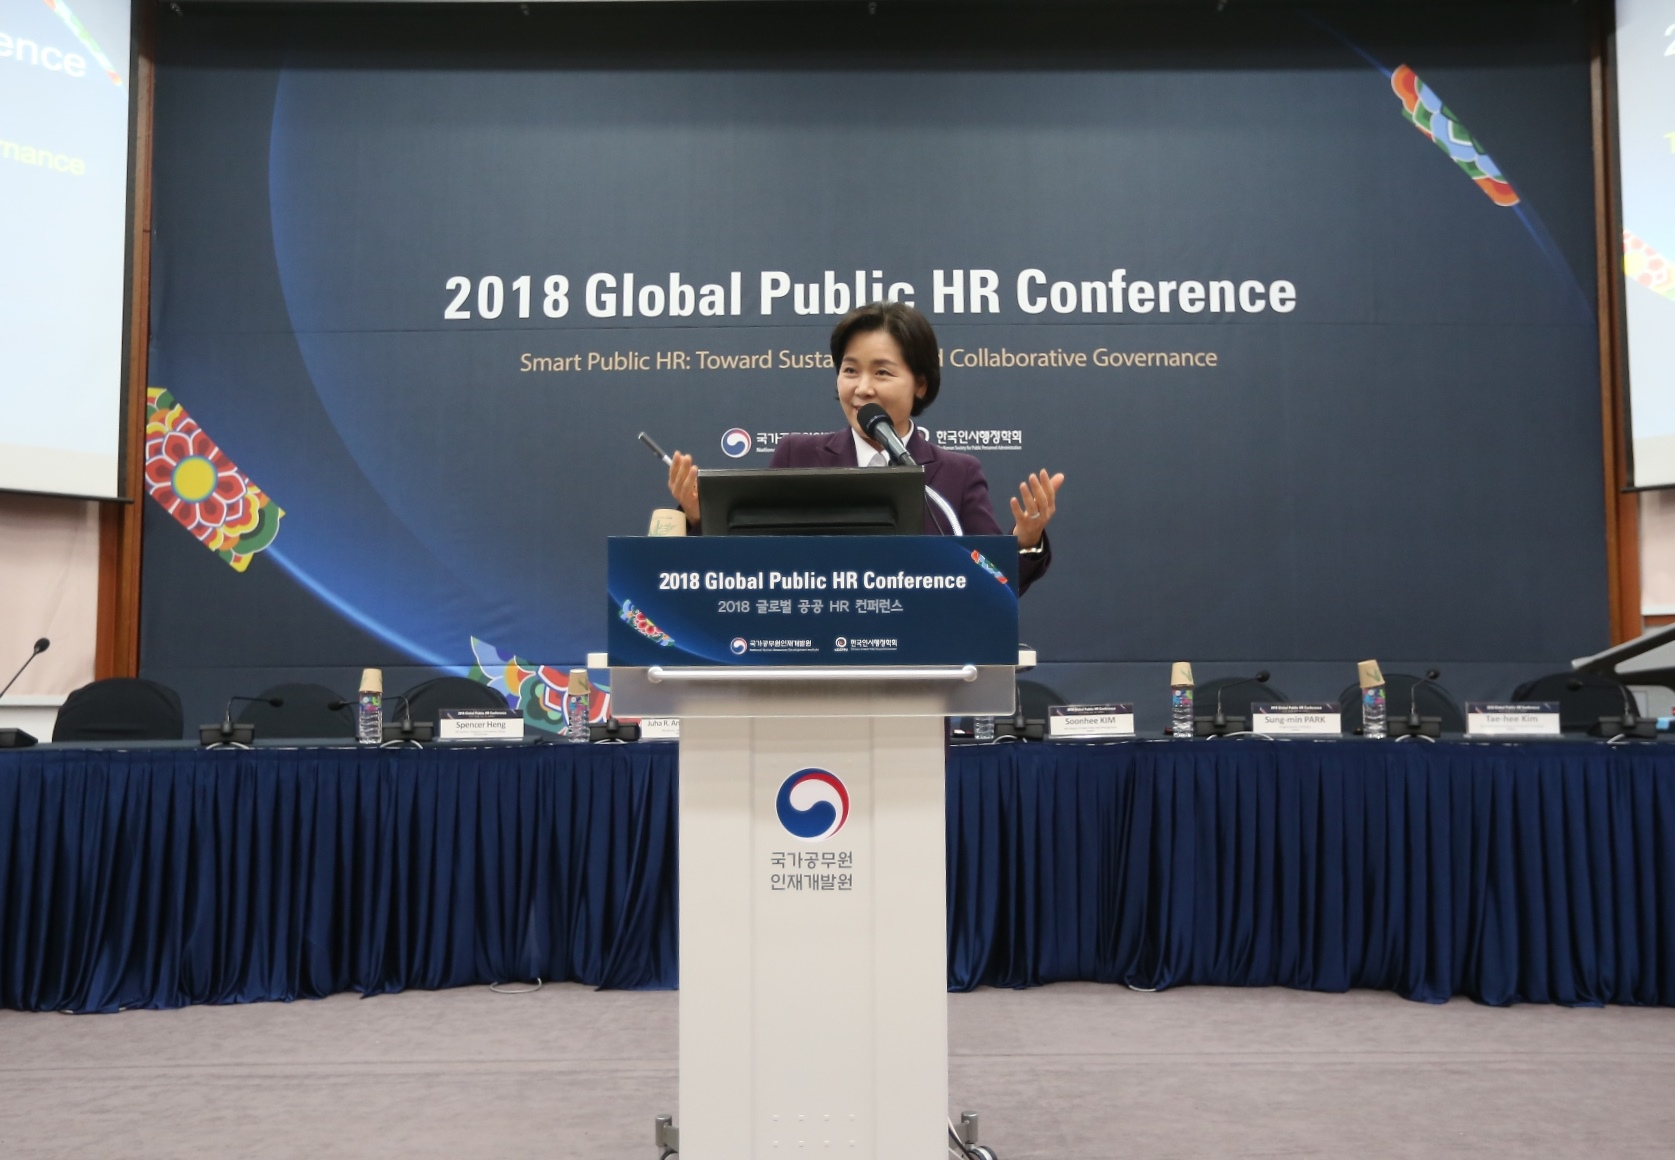 NHI President, Hyangja Yang, delivers a opening speech at the 2018 Global Public HR Conference.About 250 professionals, scholars. practitioners from 55 countries attended the conference.